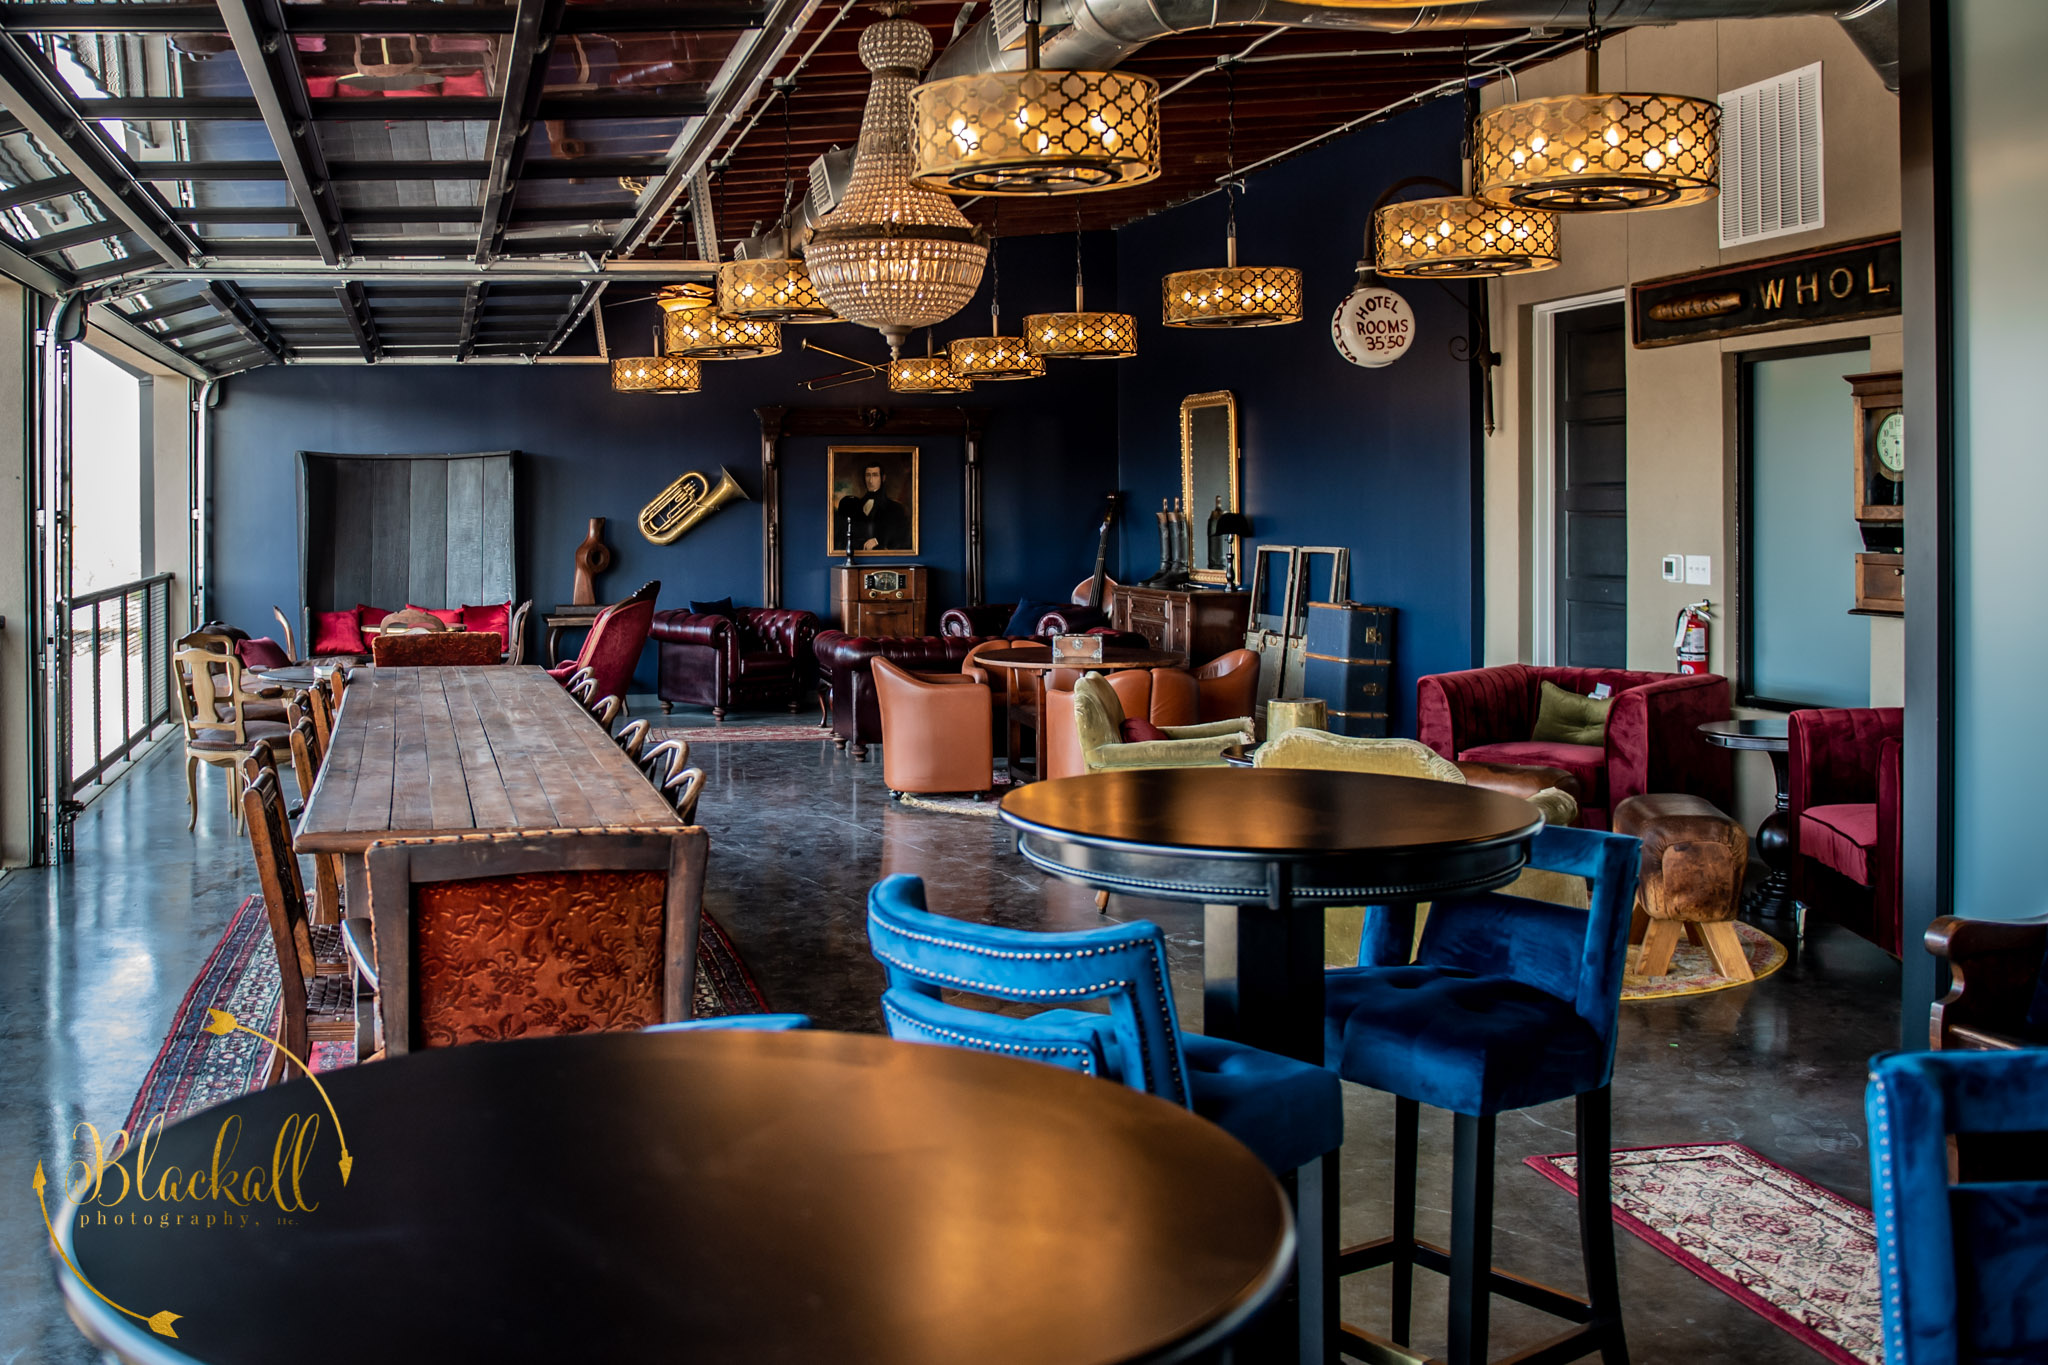 The Lounge Old Town Lewisville Blackall Photography Blackall Photography Llc